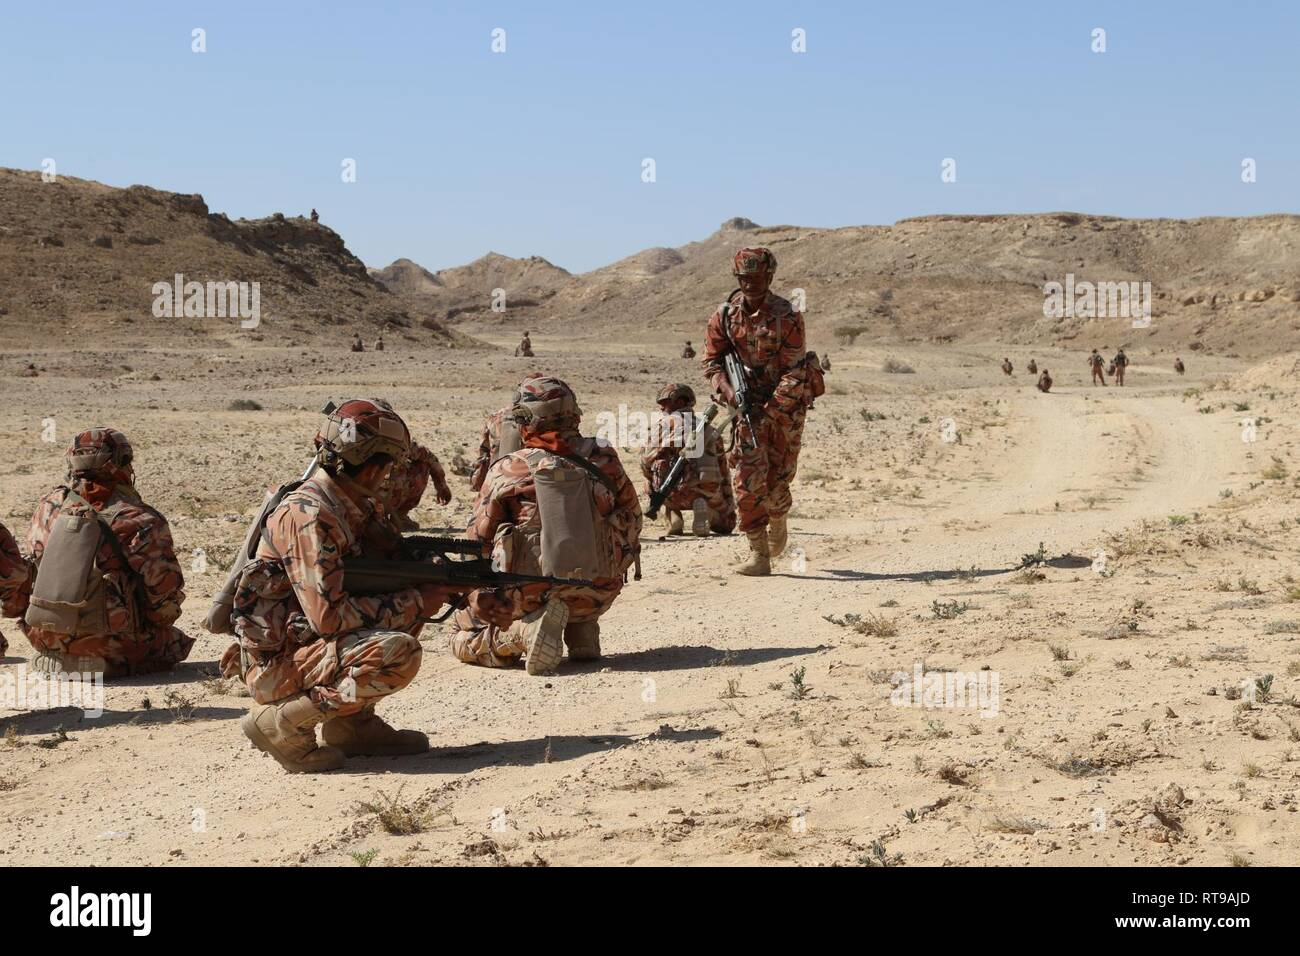 An Omani squad leader checks the status of his Soldiers